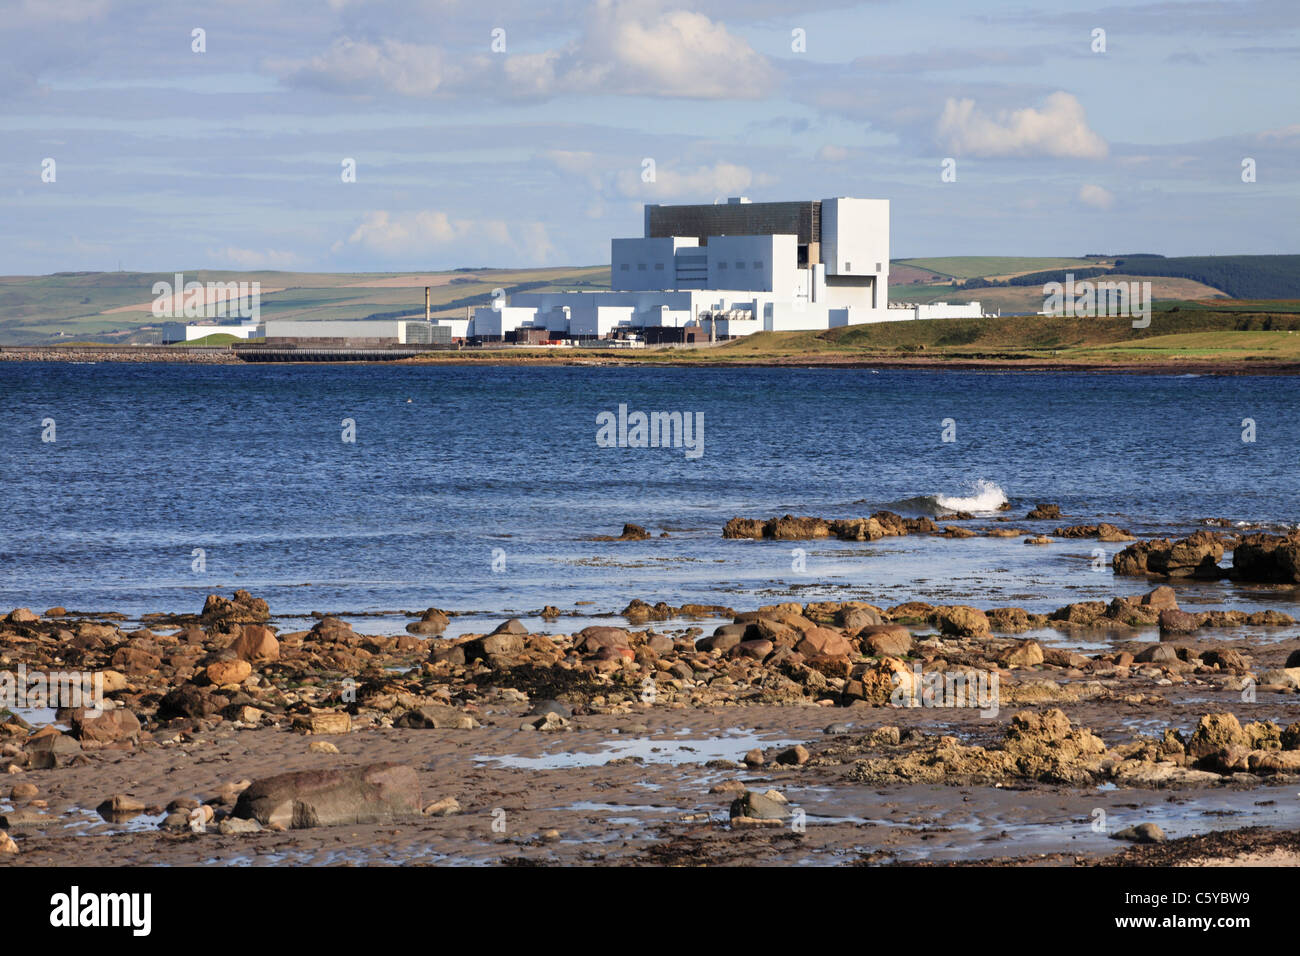 Torness nuclear power station seen from the north, near Dunbar, Scotland, UK - Stock Image